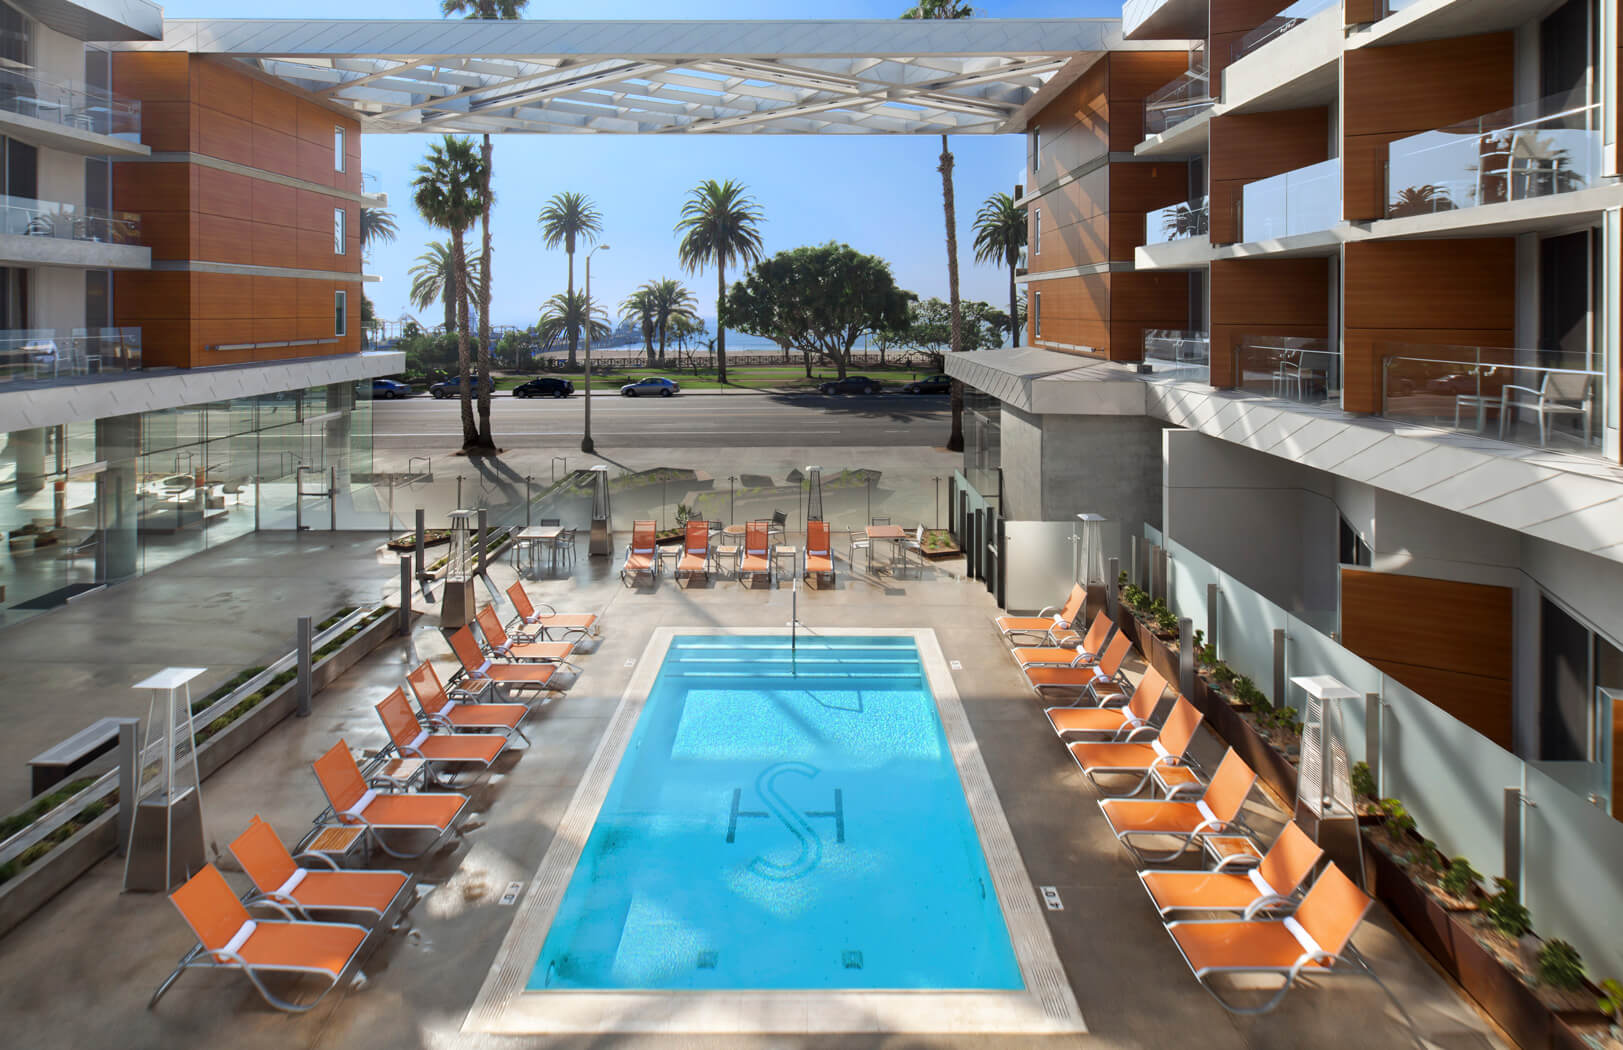 Photos Gallery Shore Hotel Santa Monica Pictures